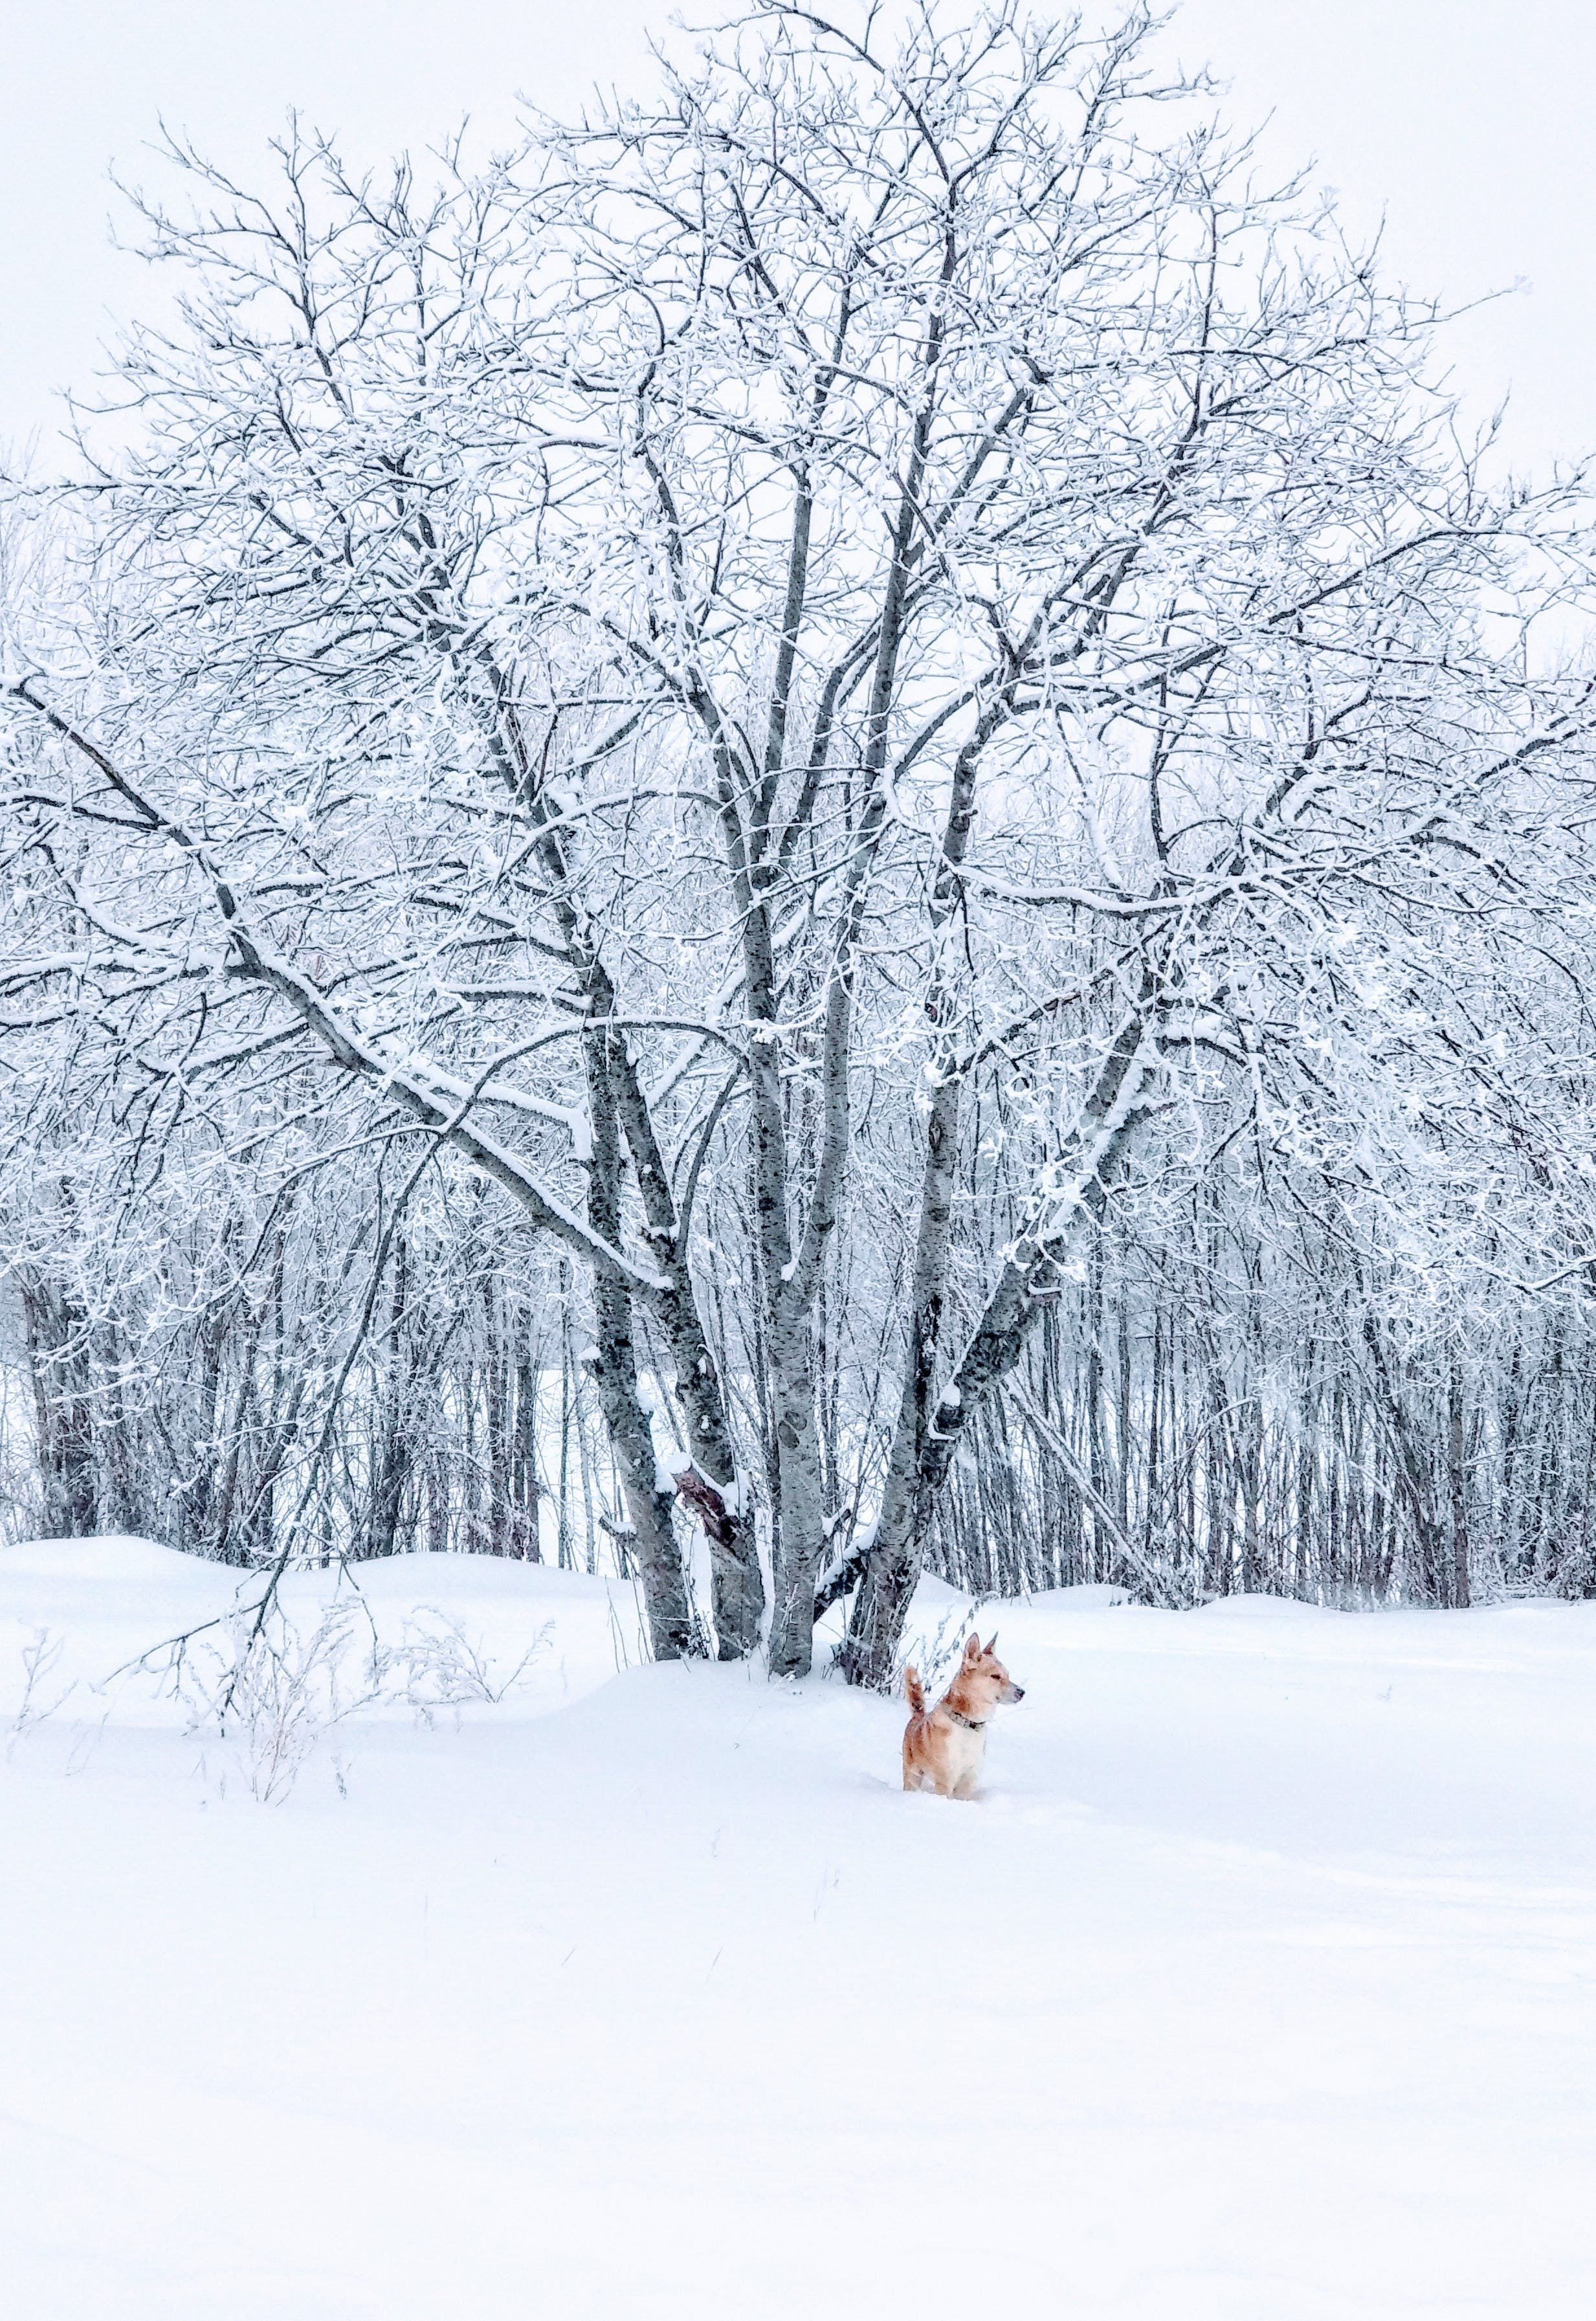 Brown Dog Standing on Snow Field Beside Bare Tree